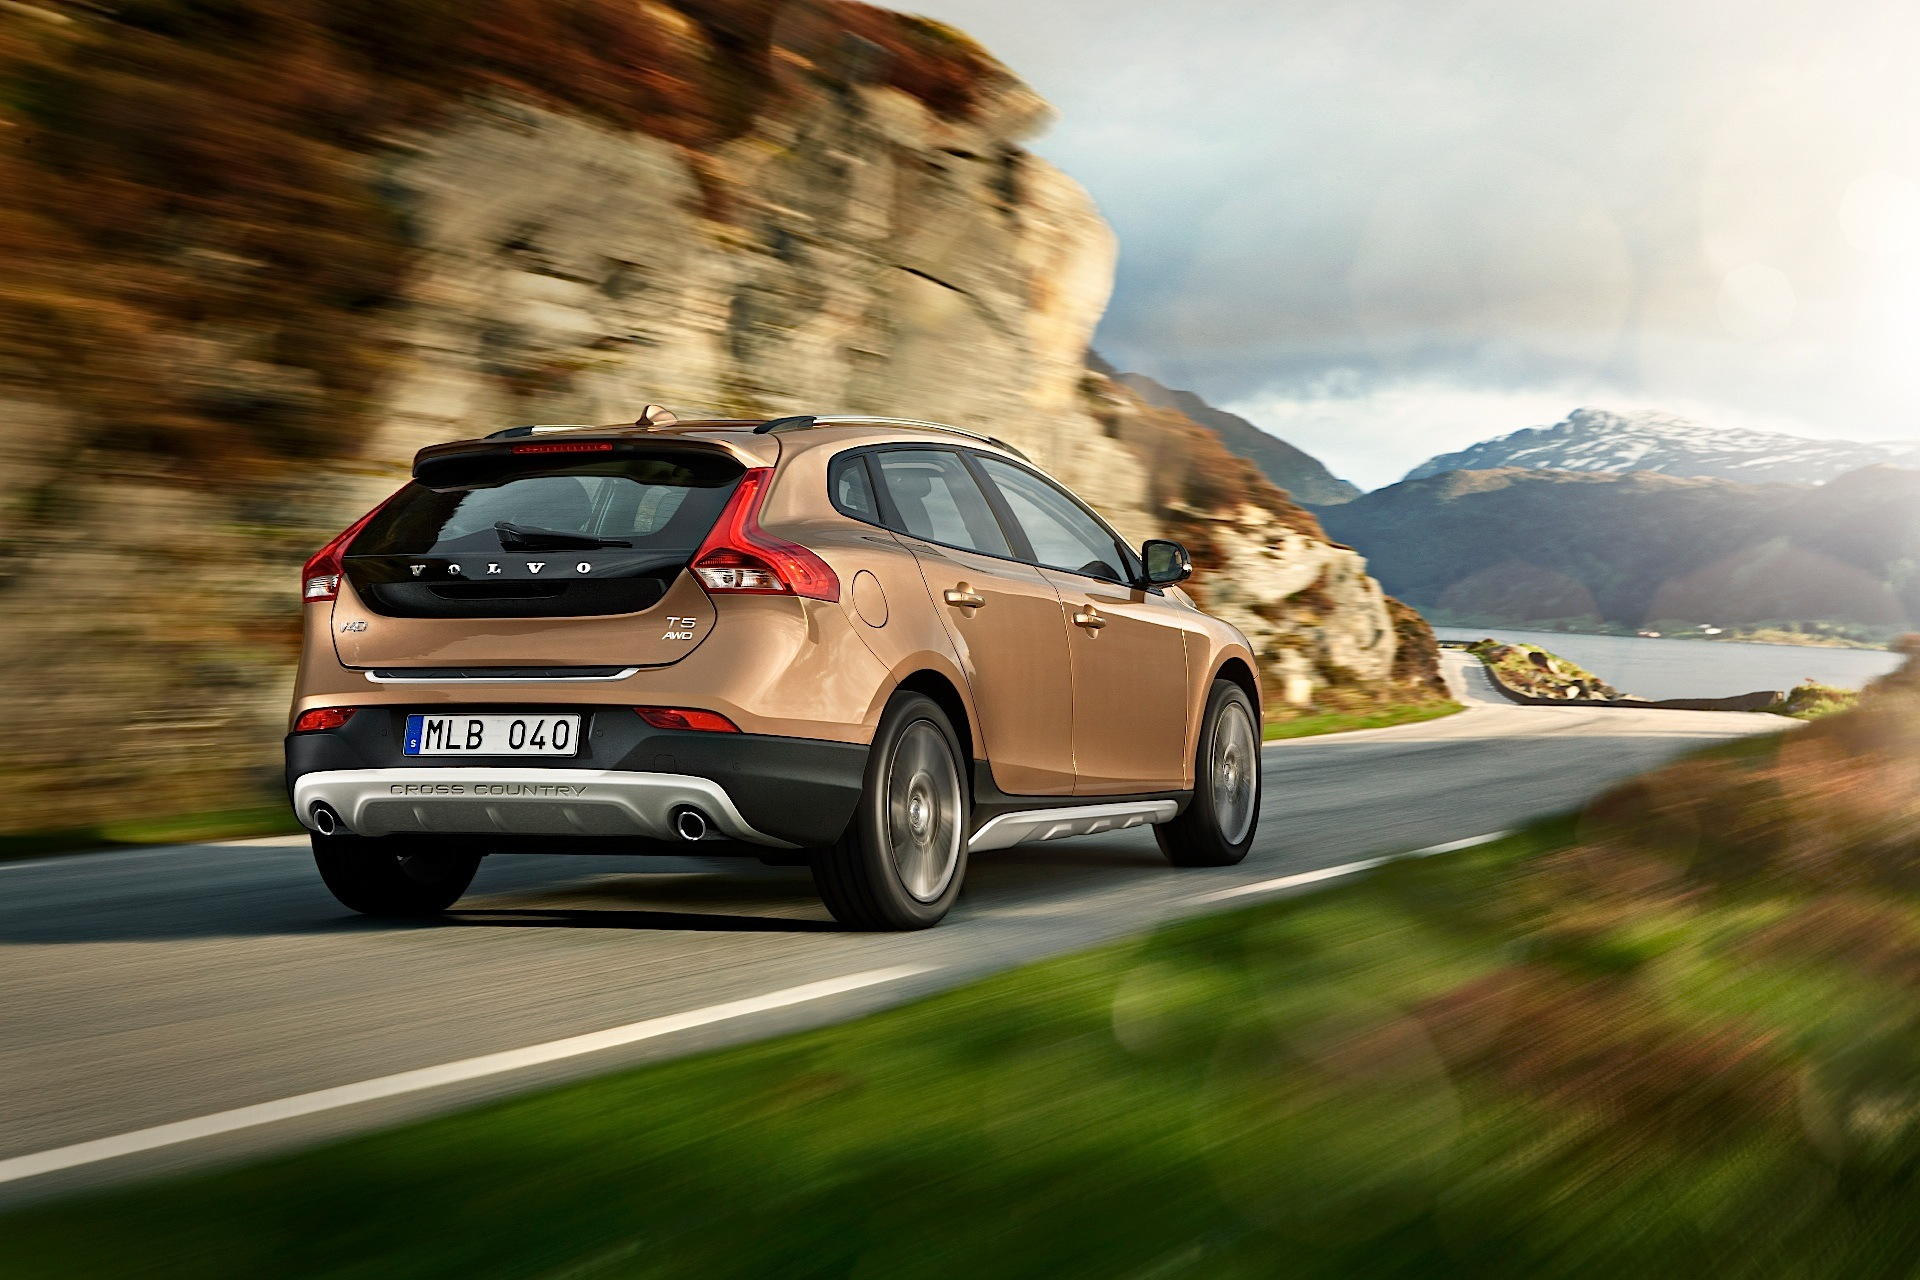 volvo v40 cross country specs 2012 2013 2014 2015 2016 autoevolution. Black Bedroom Furniture Sets. Home Design Ideas